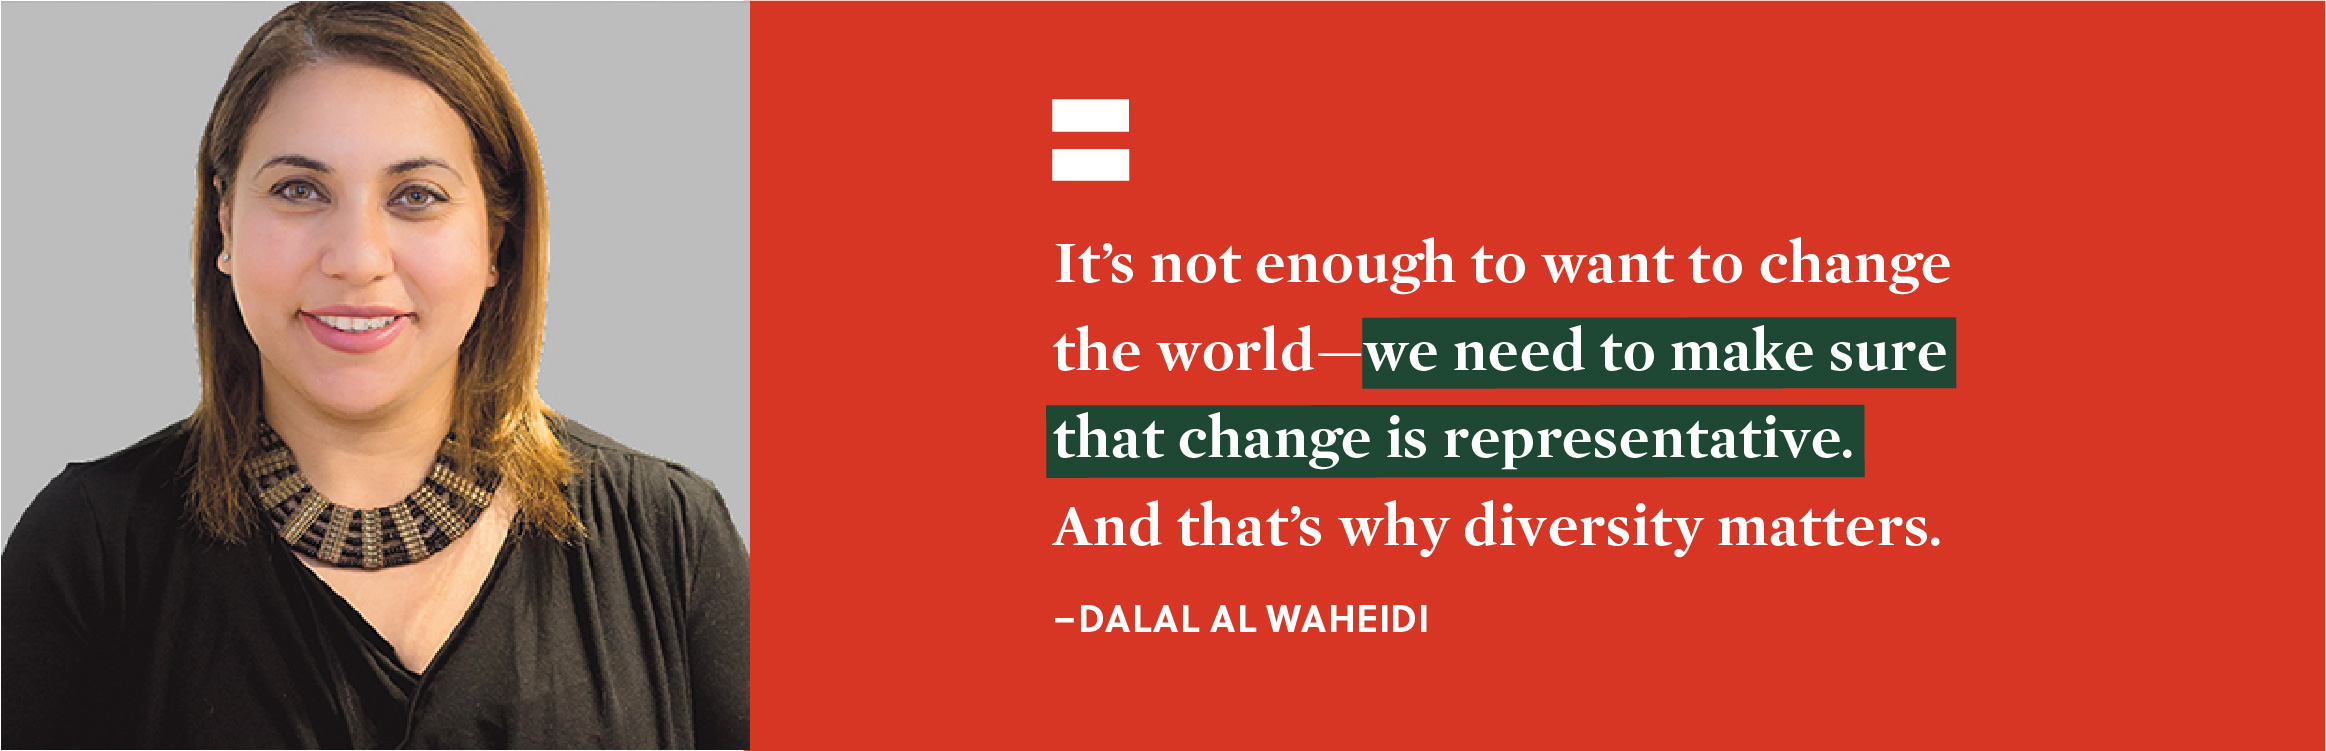 """It's not enough to want to change the world - we need to make sure that change is representative. And that's why diversity matters."" - Dalal Al-Waheidi."